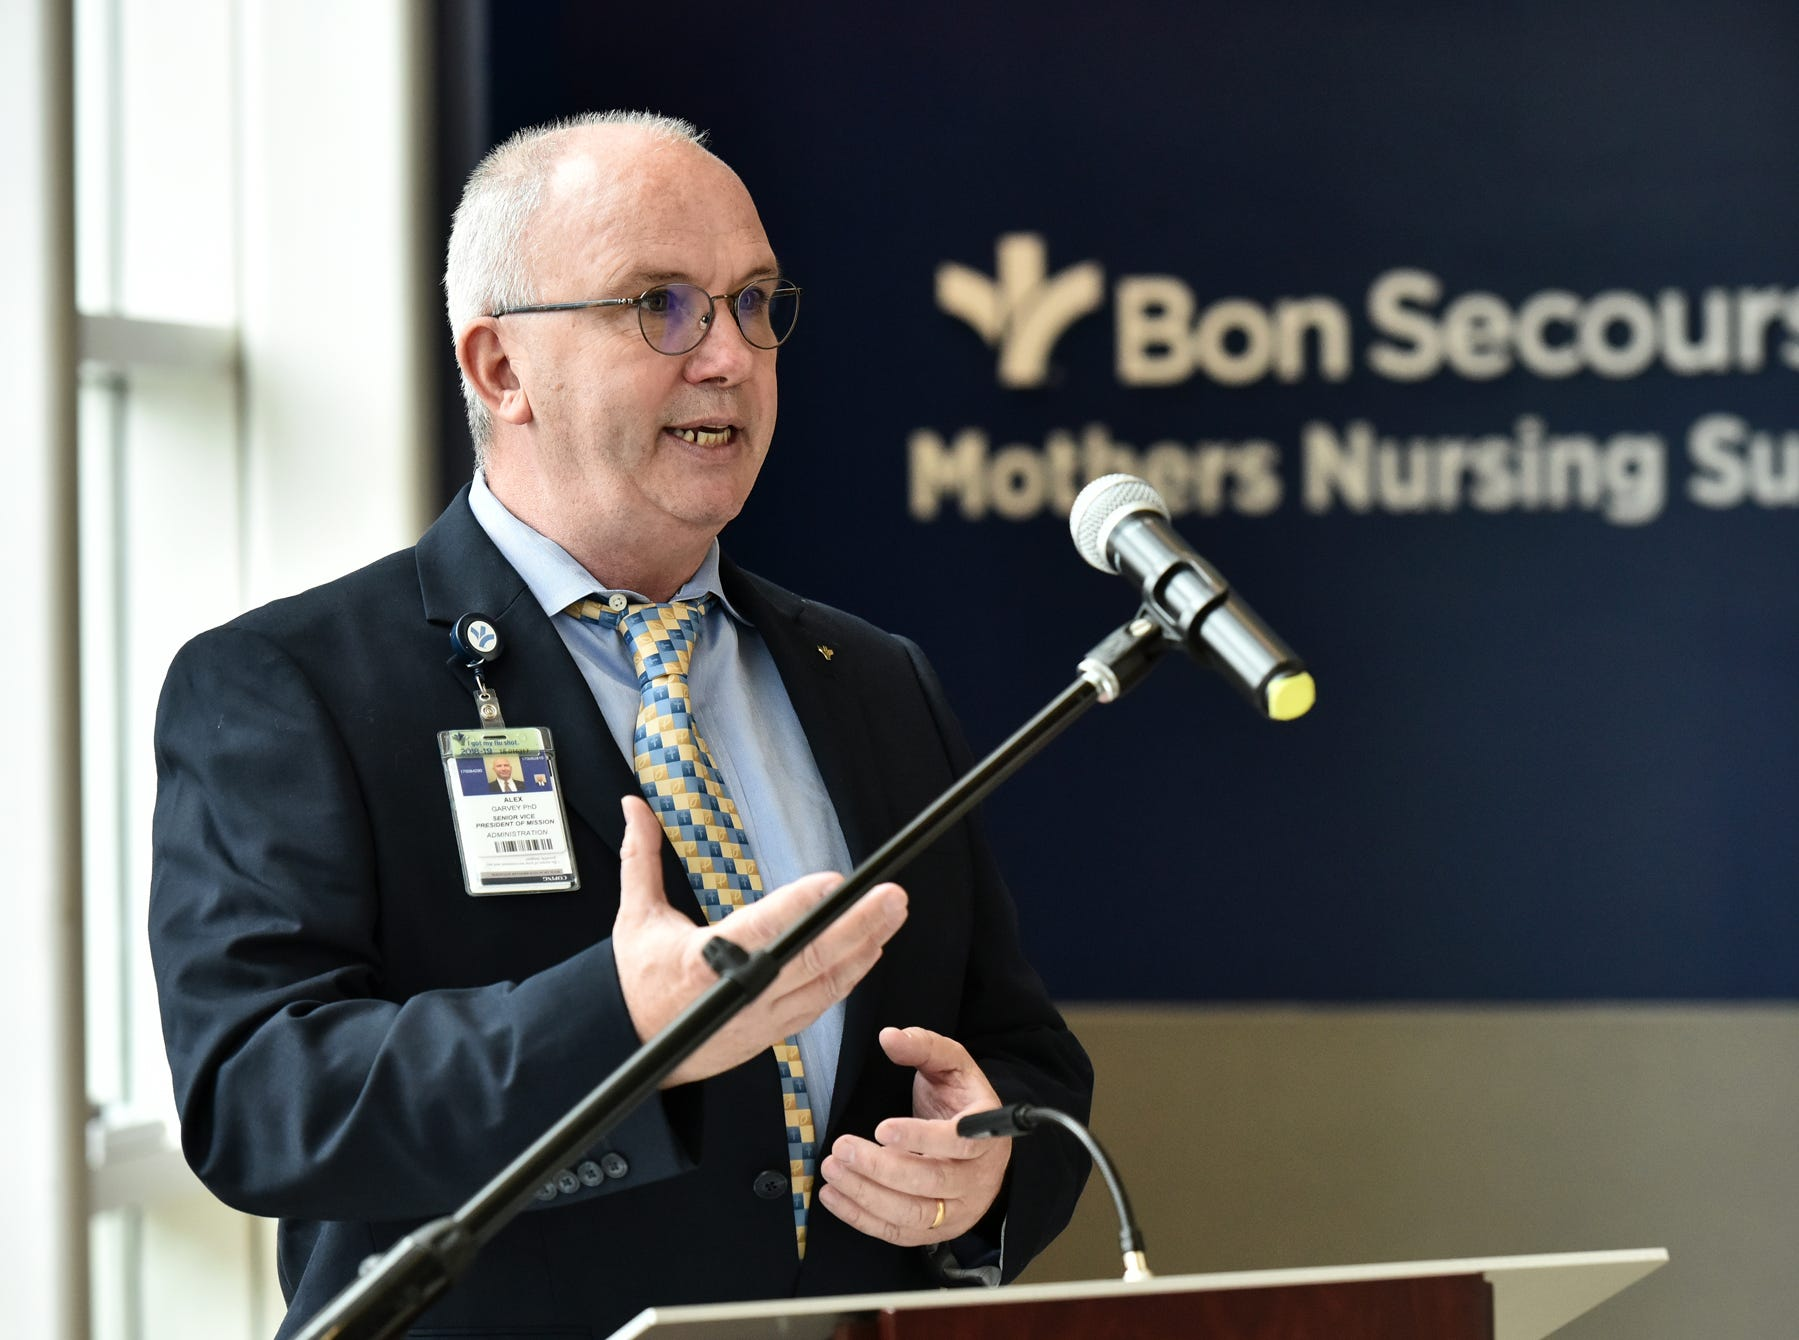 Alex Garvey, senior vice president of misson at Bon Secours, speaks during a blessing ceremony for the mothers nursing suite at the Bon Secours Wellness Arena on Tuesday morning, November 13, 2018.